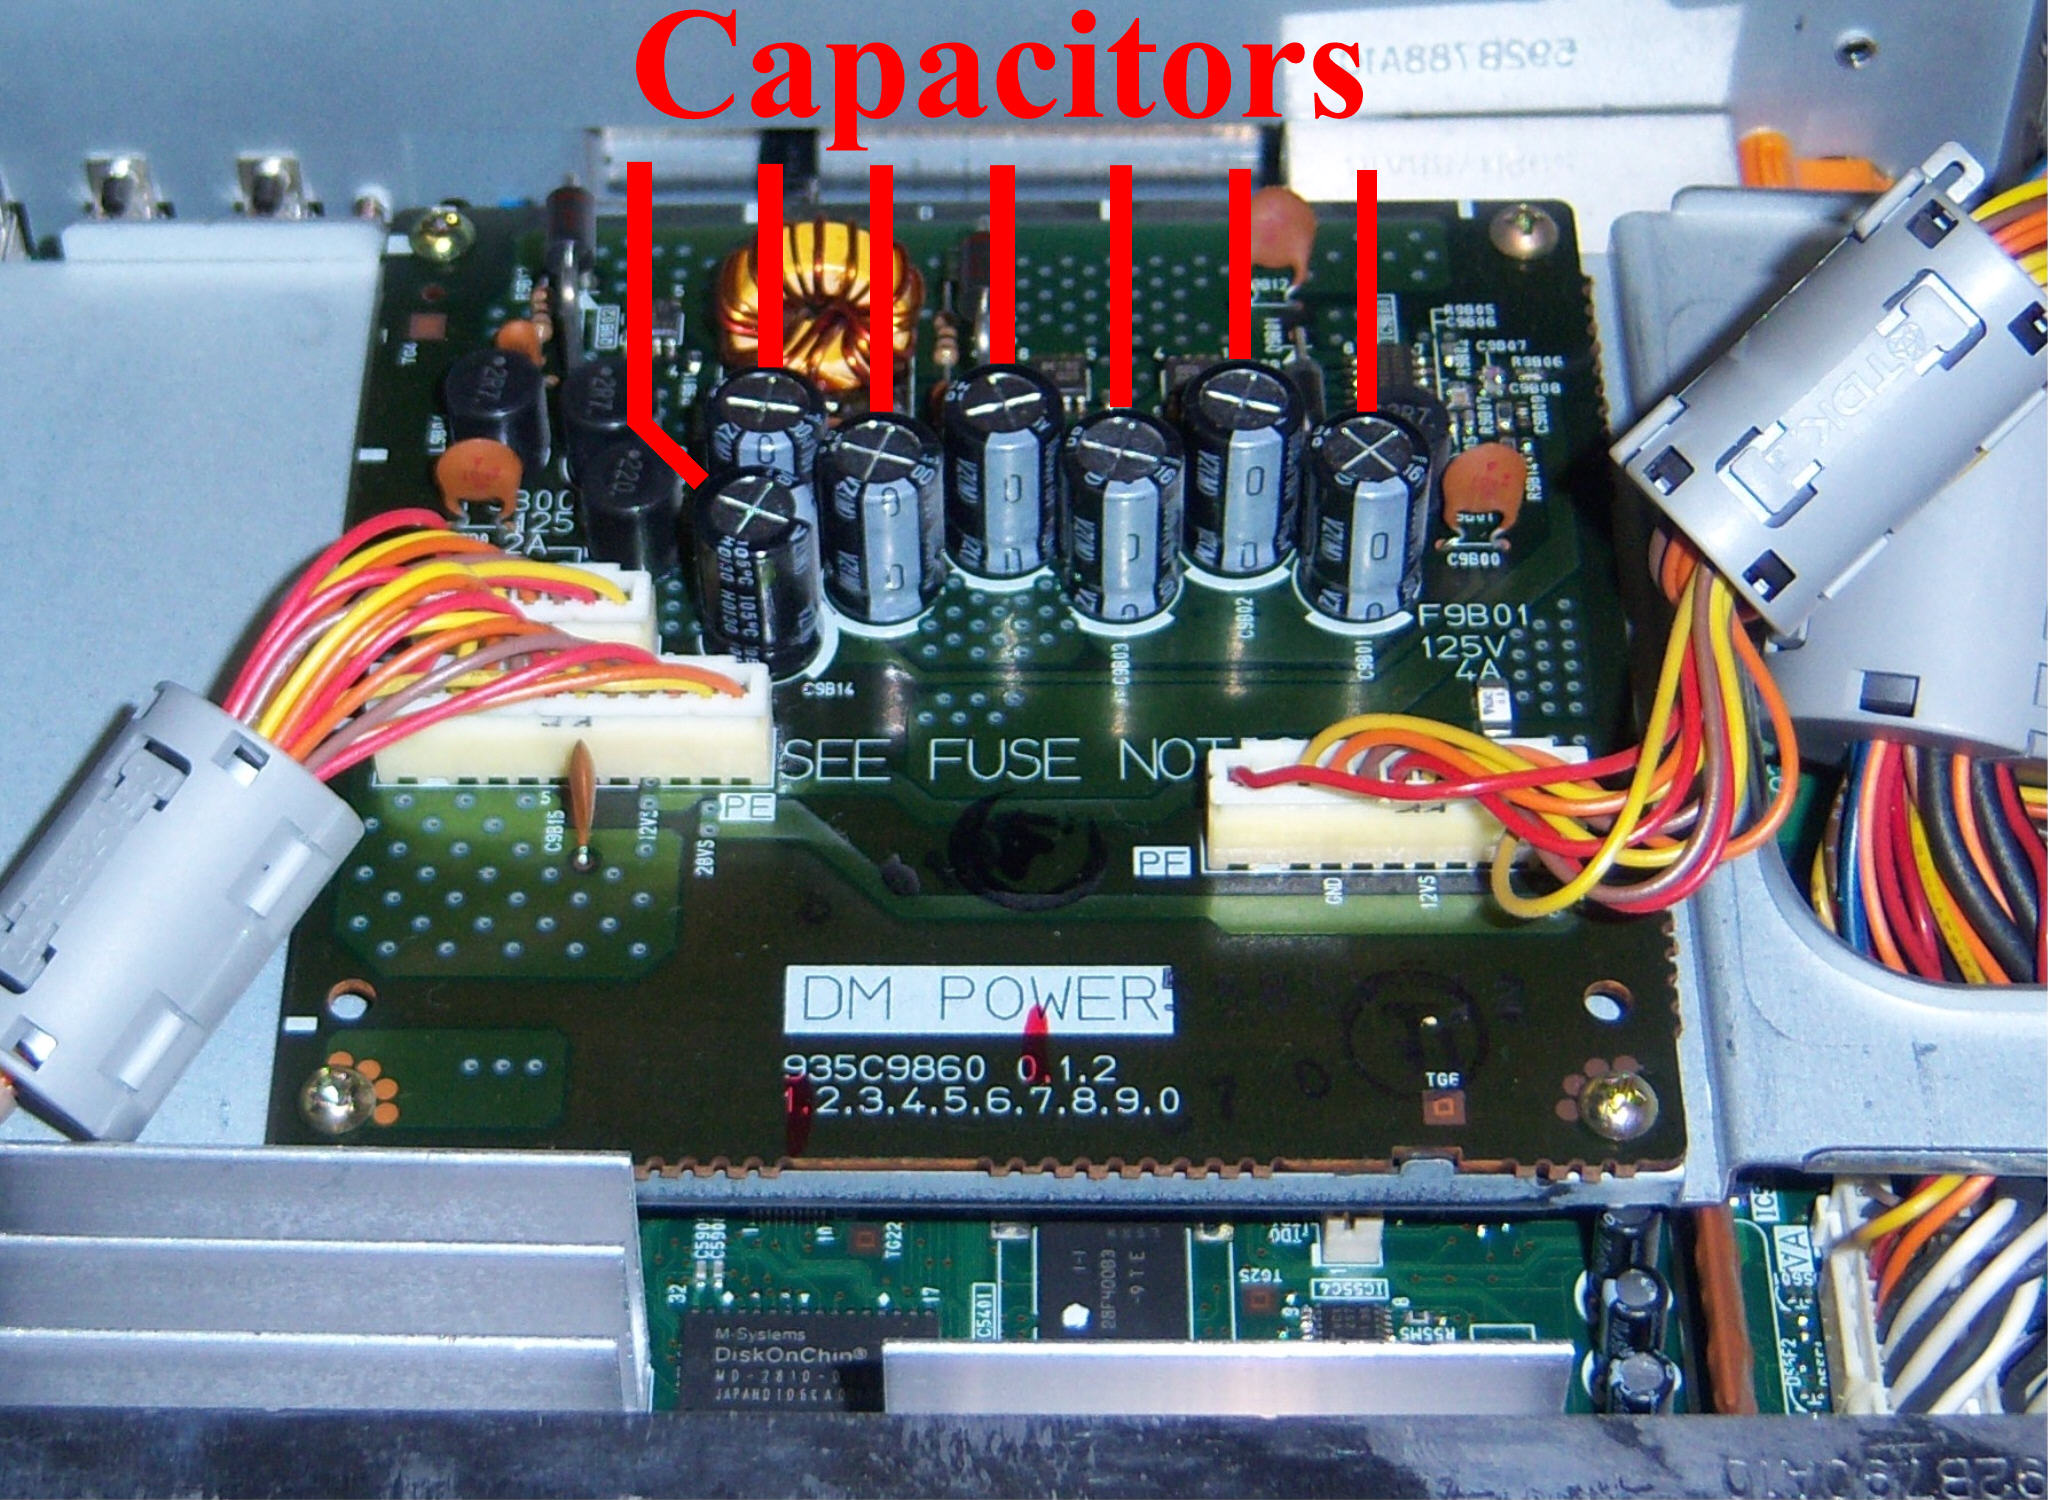 We have a mitsubishi model ws 65909 large screen tv we had a here is a block diagram of the dm power supply just in case you need to measure voltages or replace the fuses pooptronica Gallery